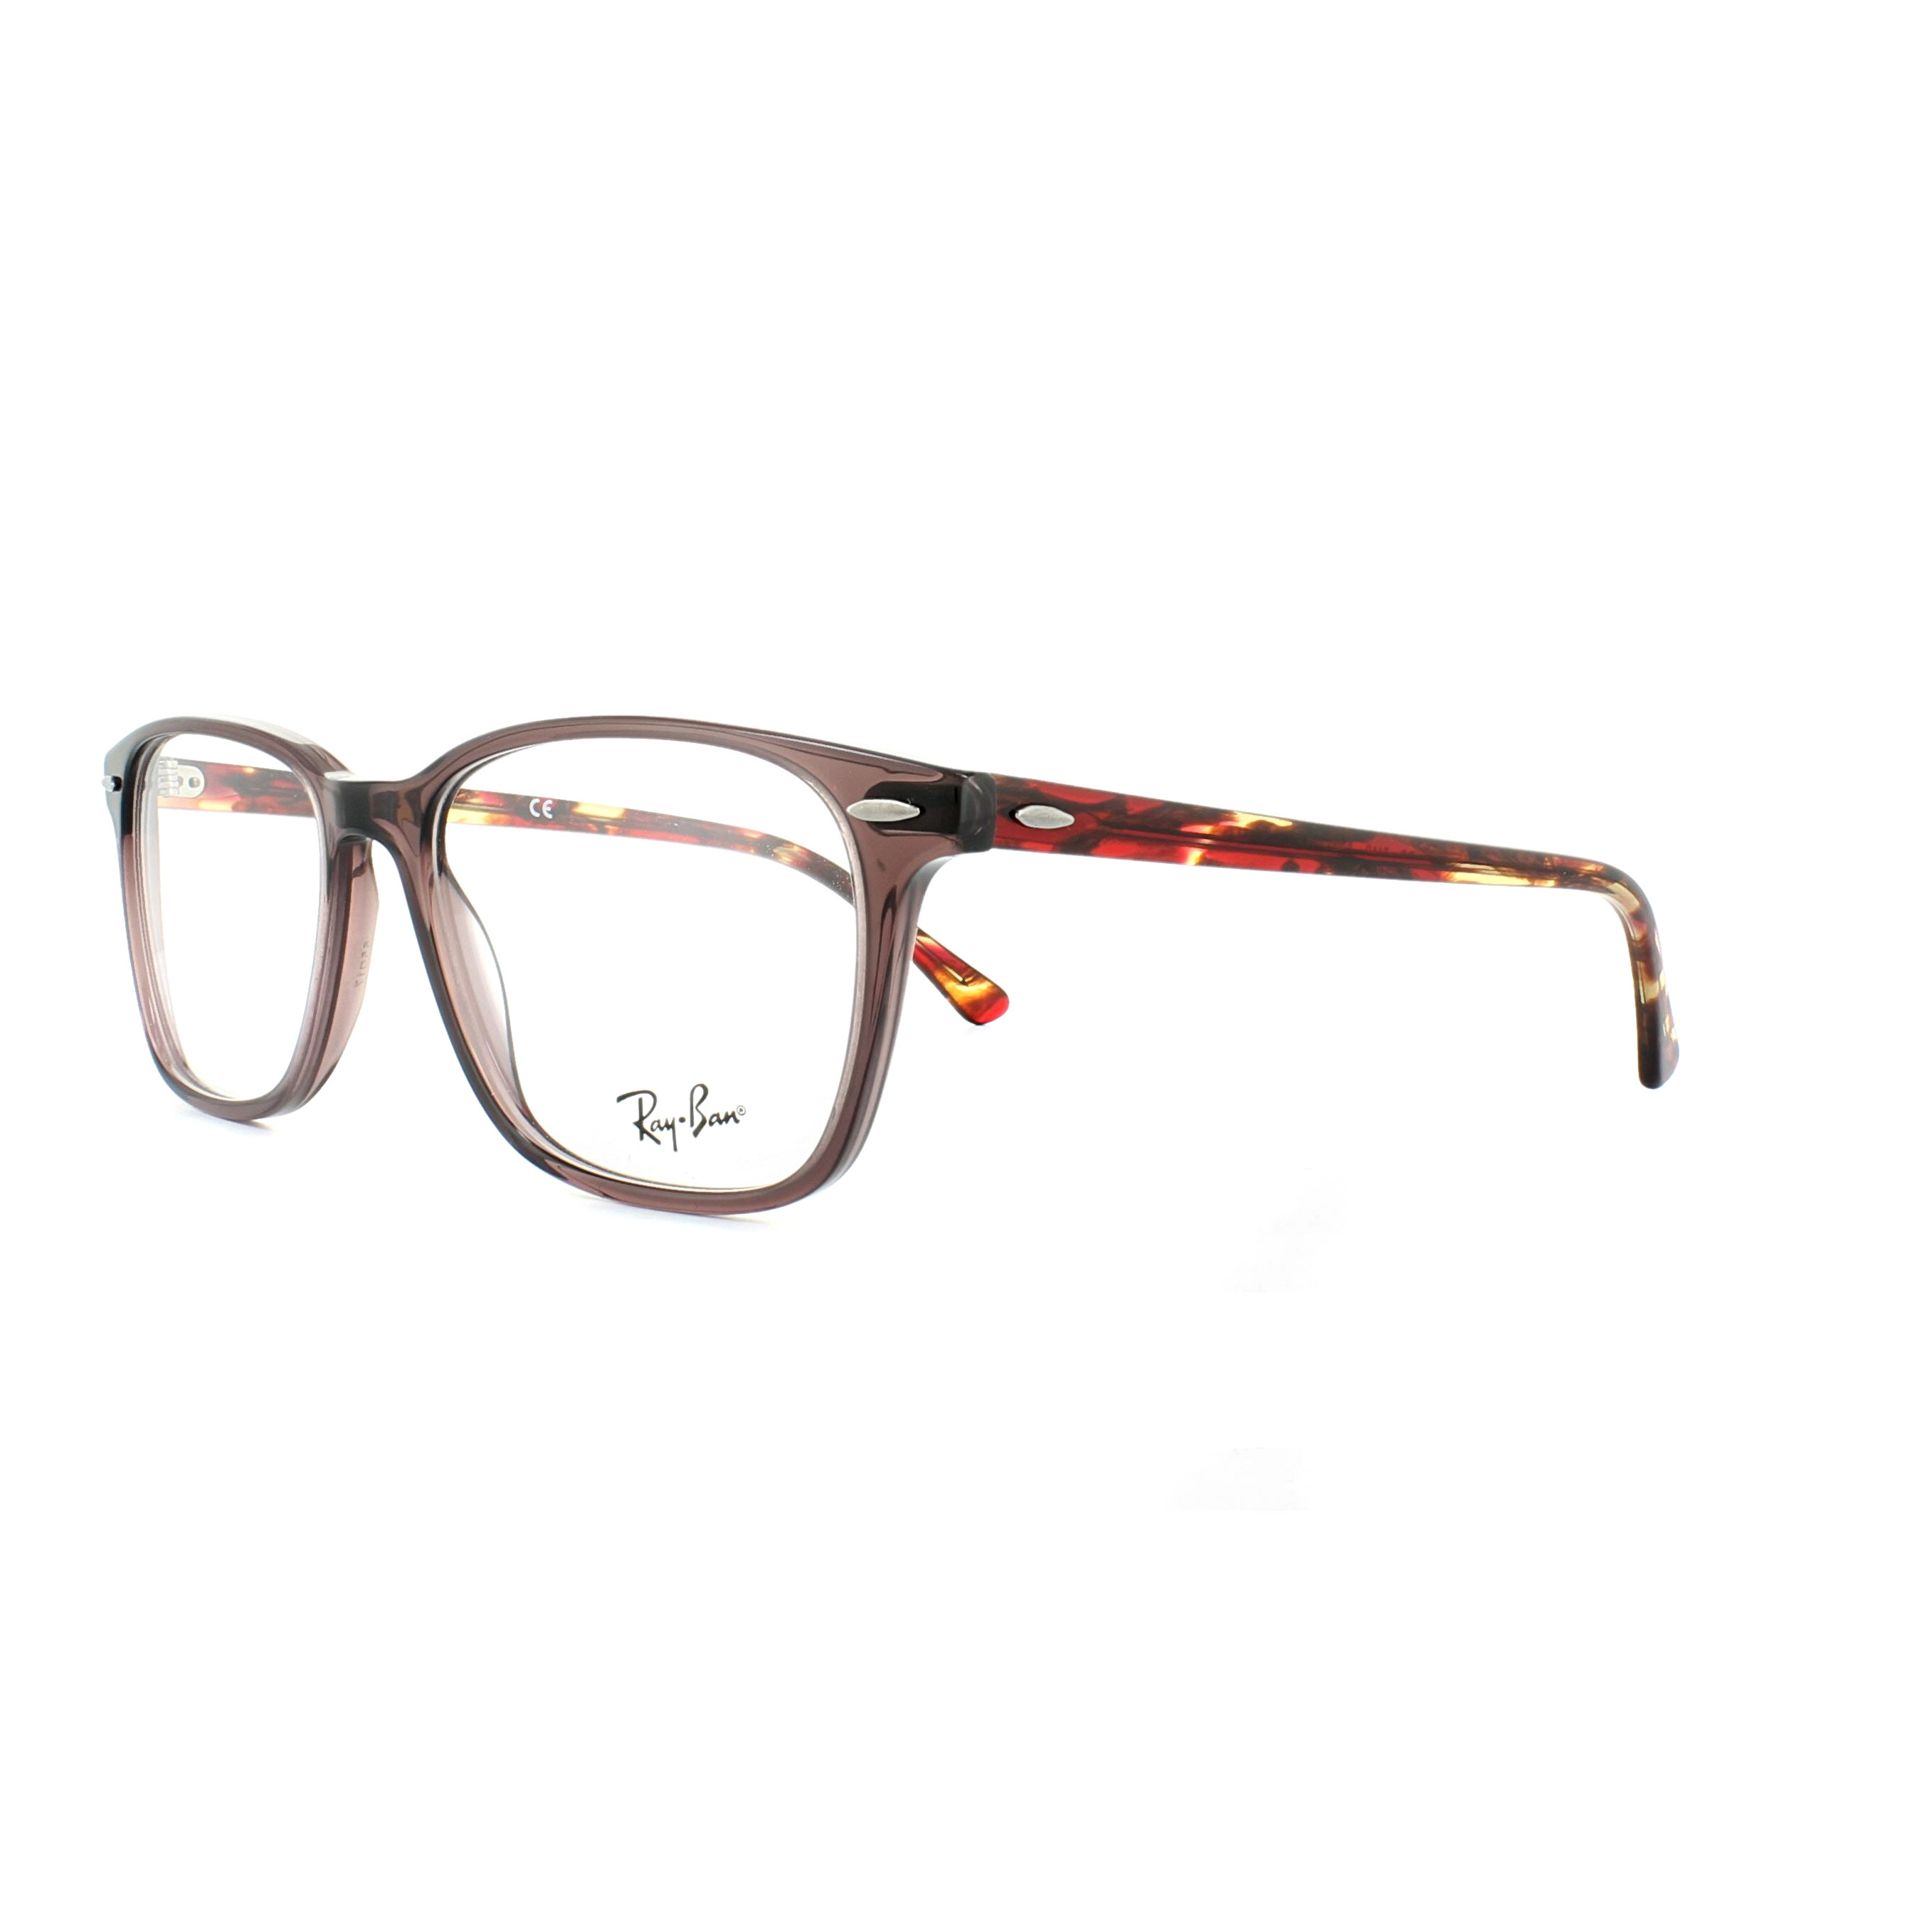 d32cd67110e Details about Ray-Ban Glasses Frames 7119 8023 Brown Red Havana 55mm Mens  Womens